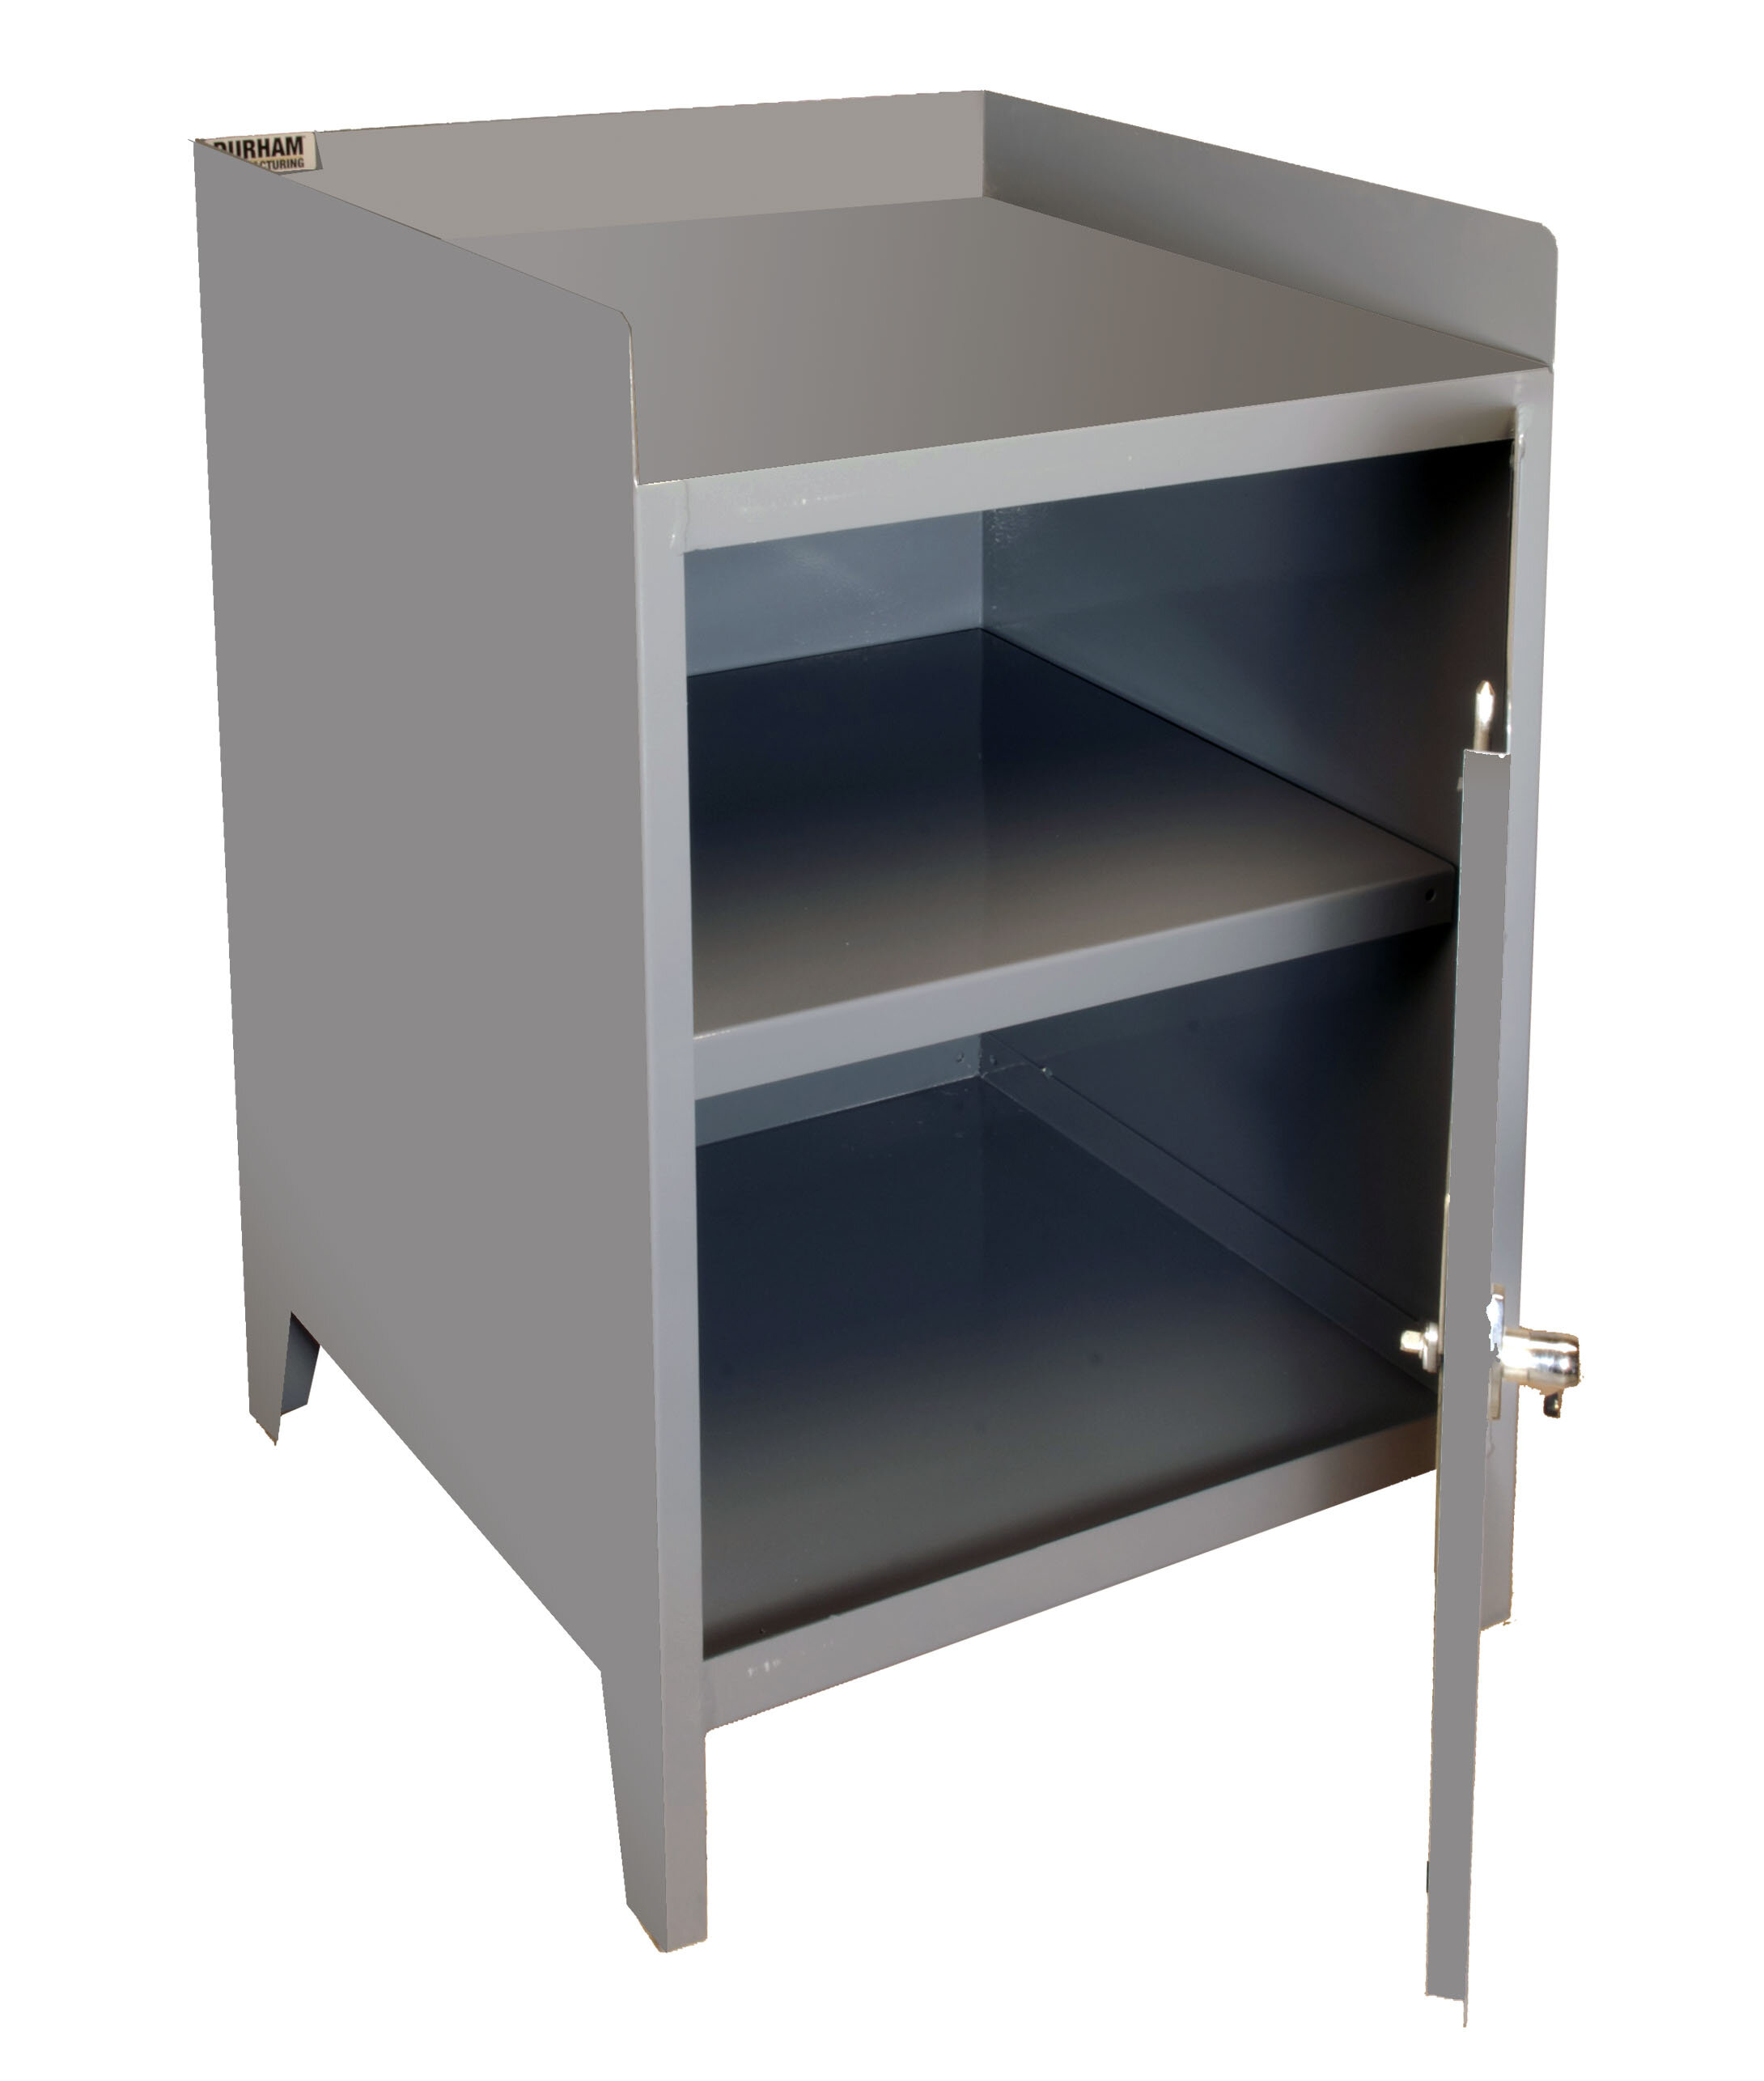 Durham Manufacturing 35 5 H X 24 W X 24 D Secure Mobile Bench Cabinet Wayfair